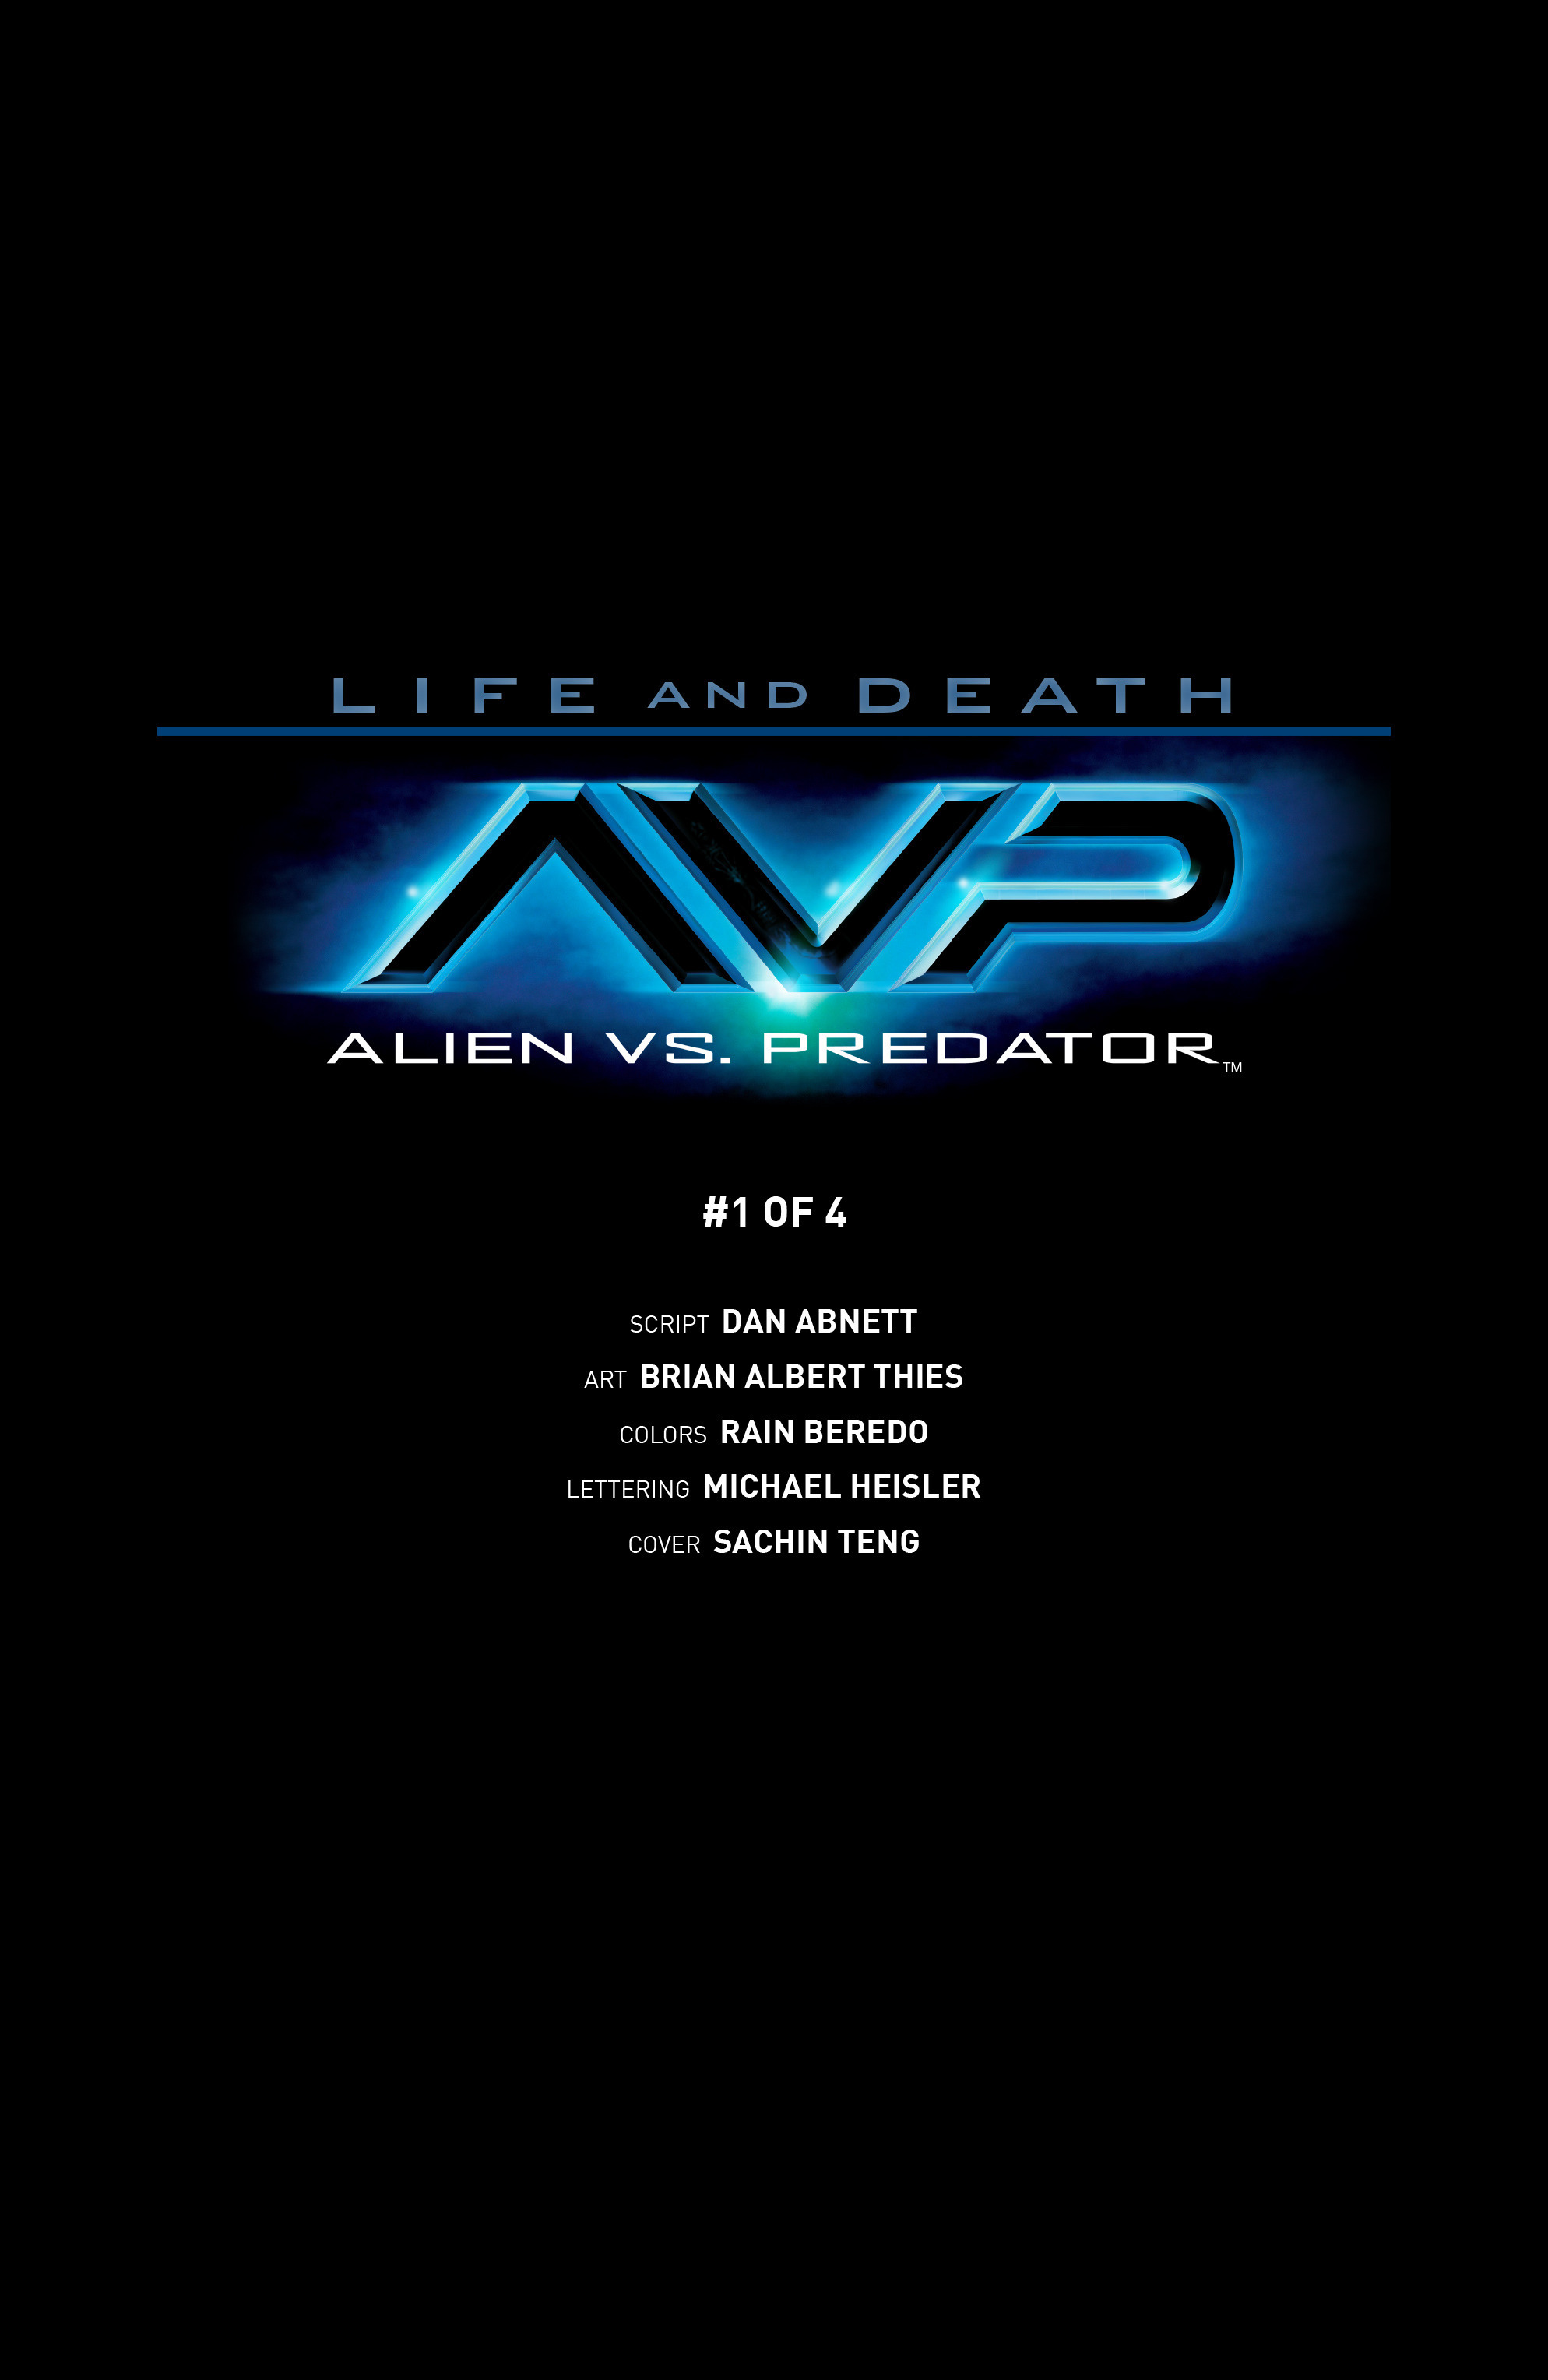 Read online Alien Vs. Predator: Life and Death comic -  Issue #1 - 30